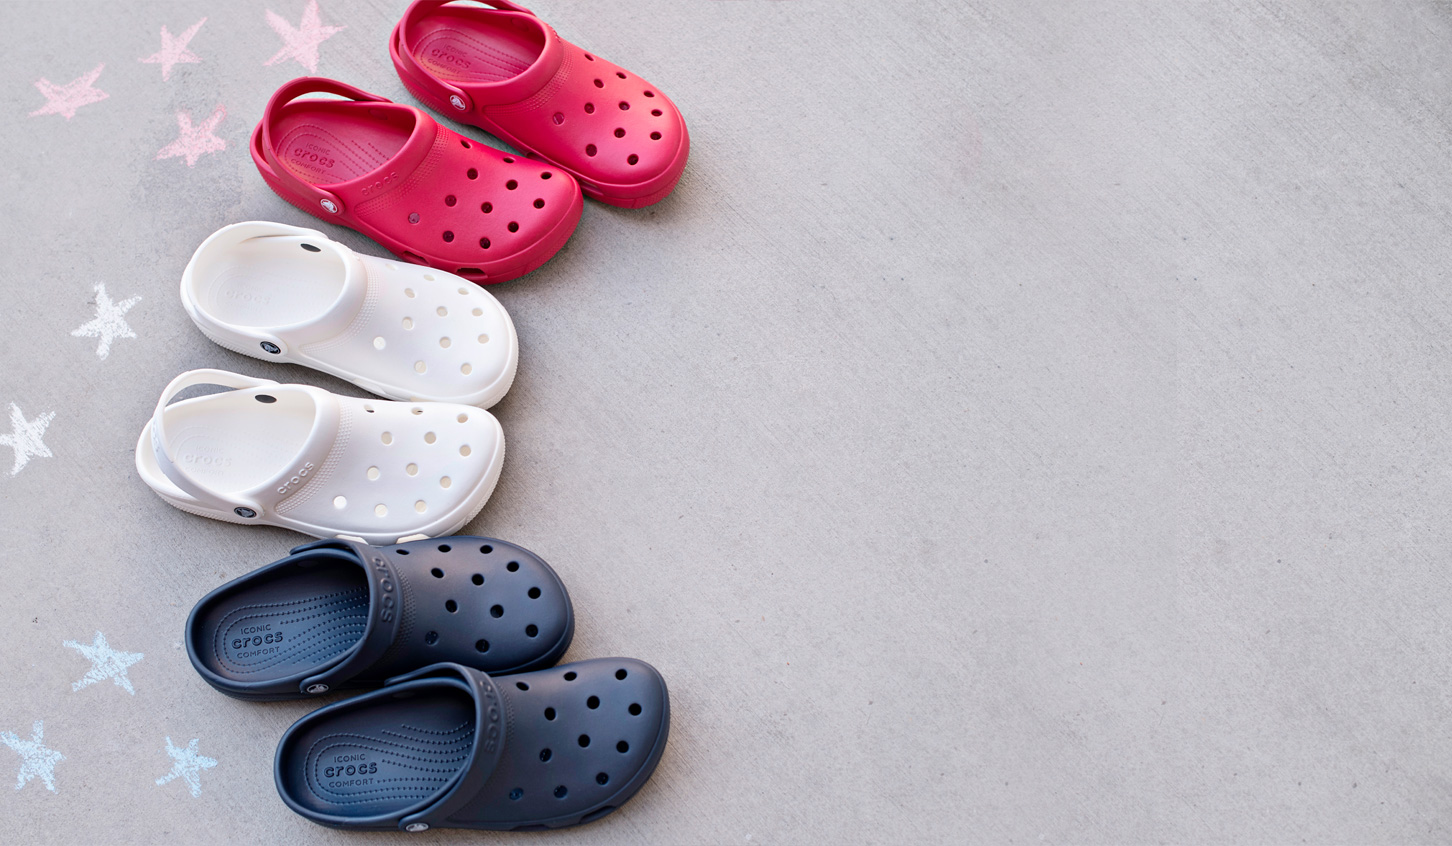 Assorted Colored Crocs Shop Now